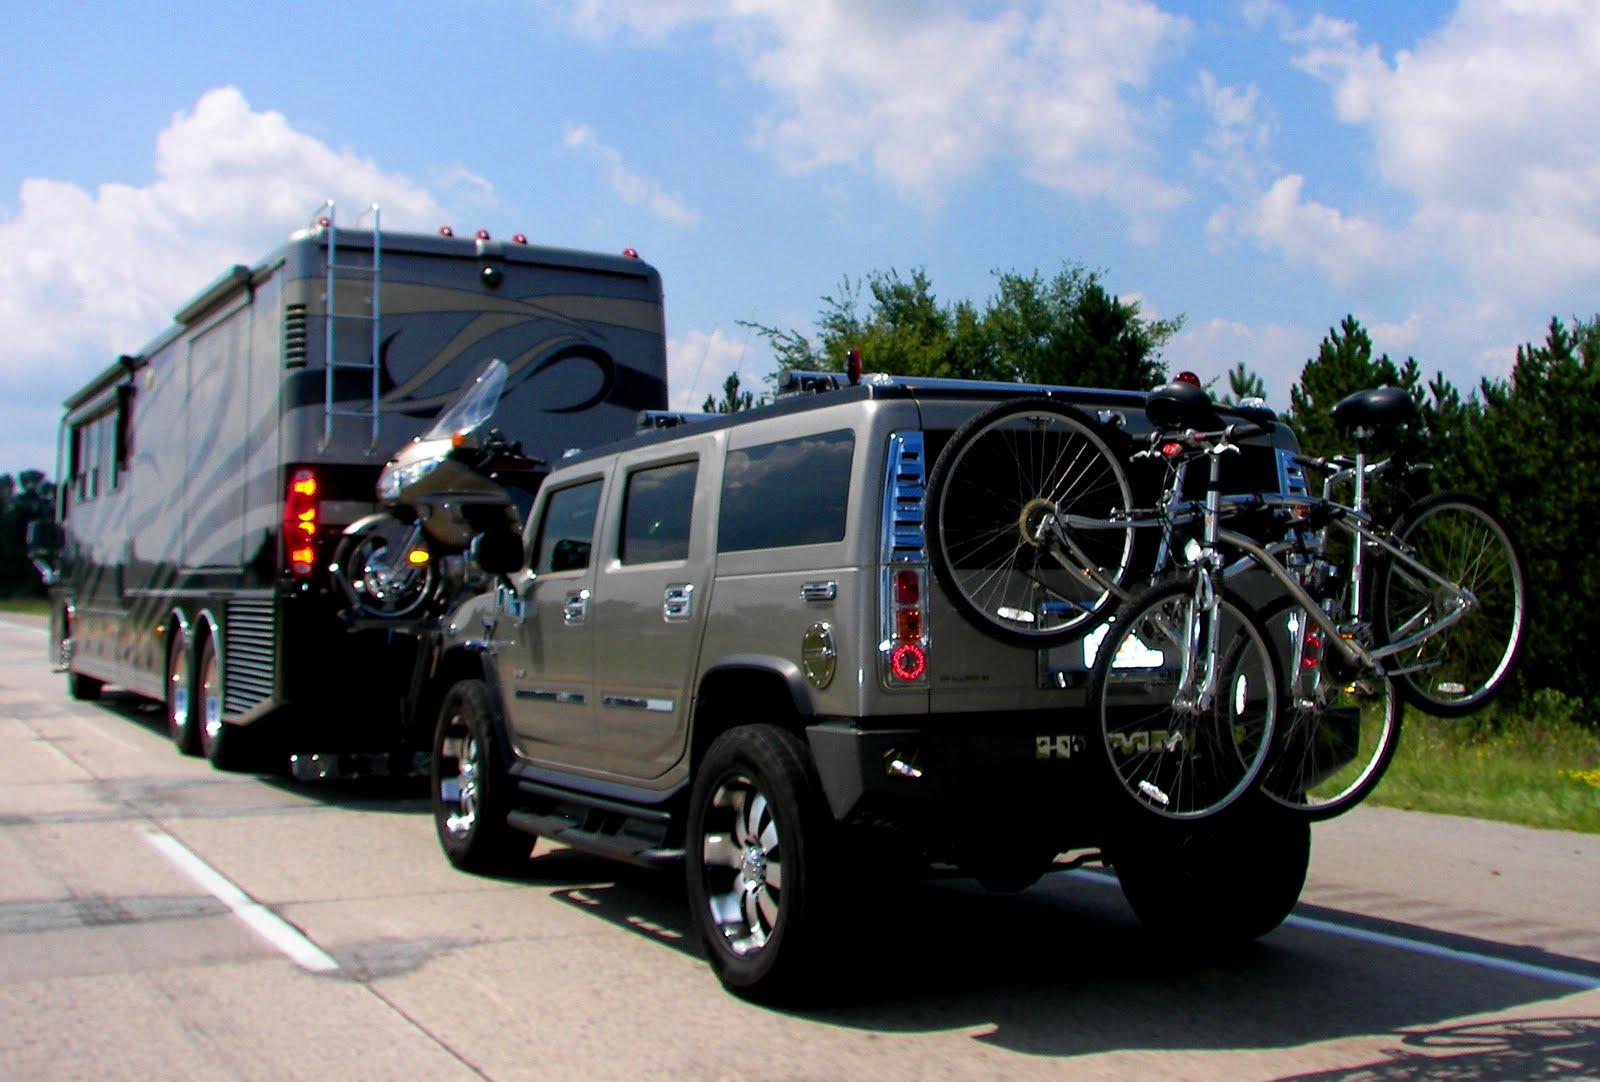 2 Person Smart Car >> historymike: RV Towing a Hummer